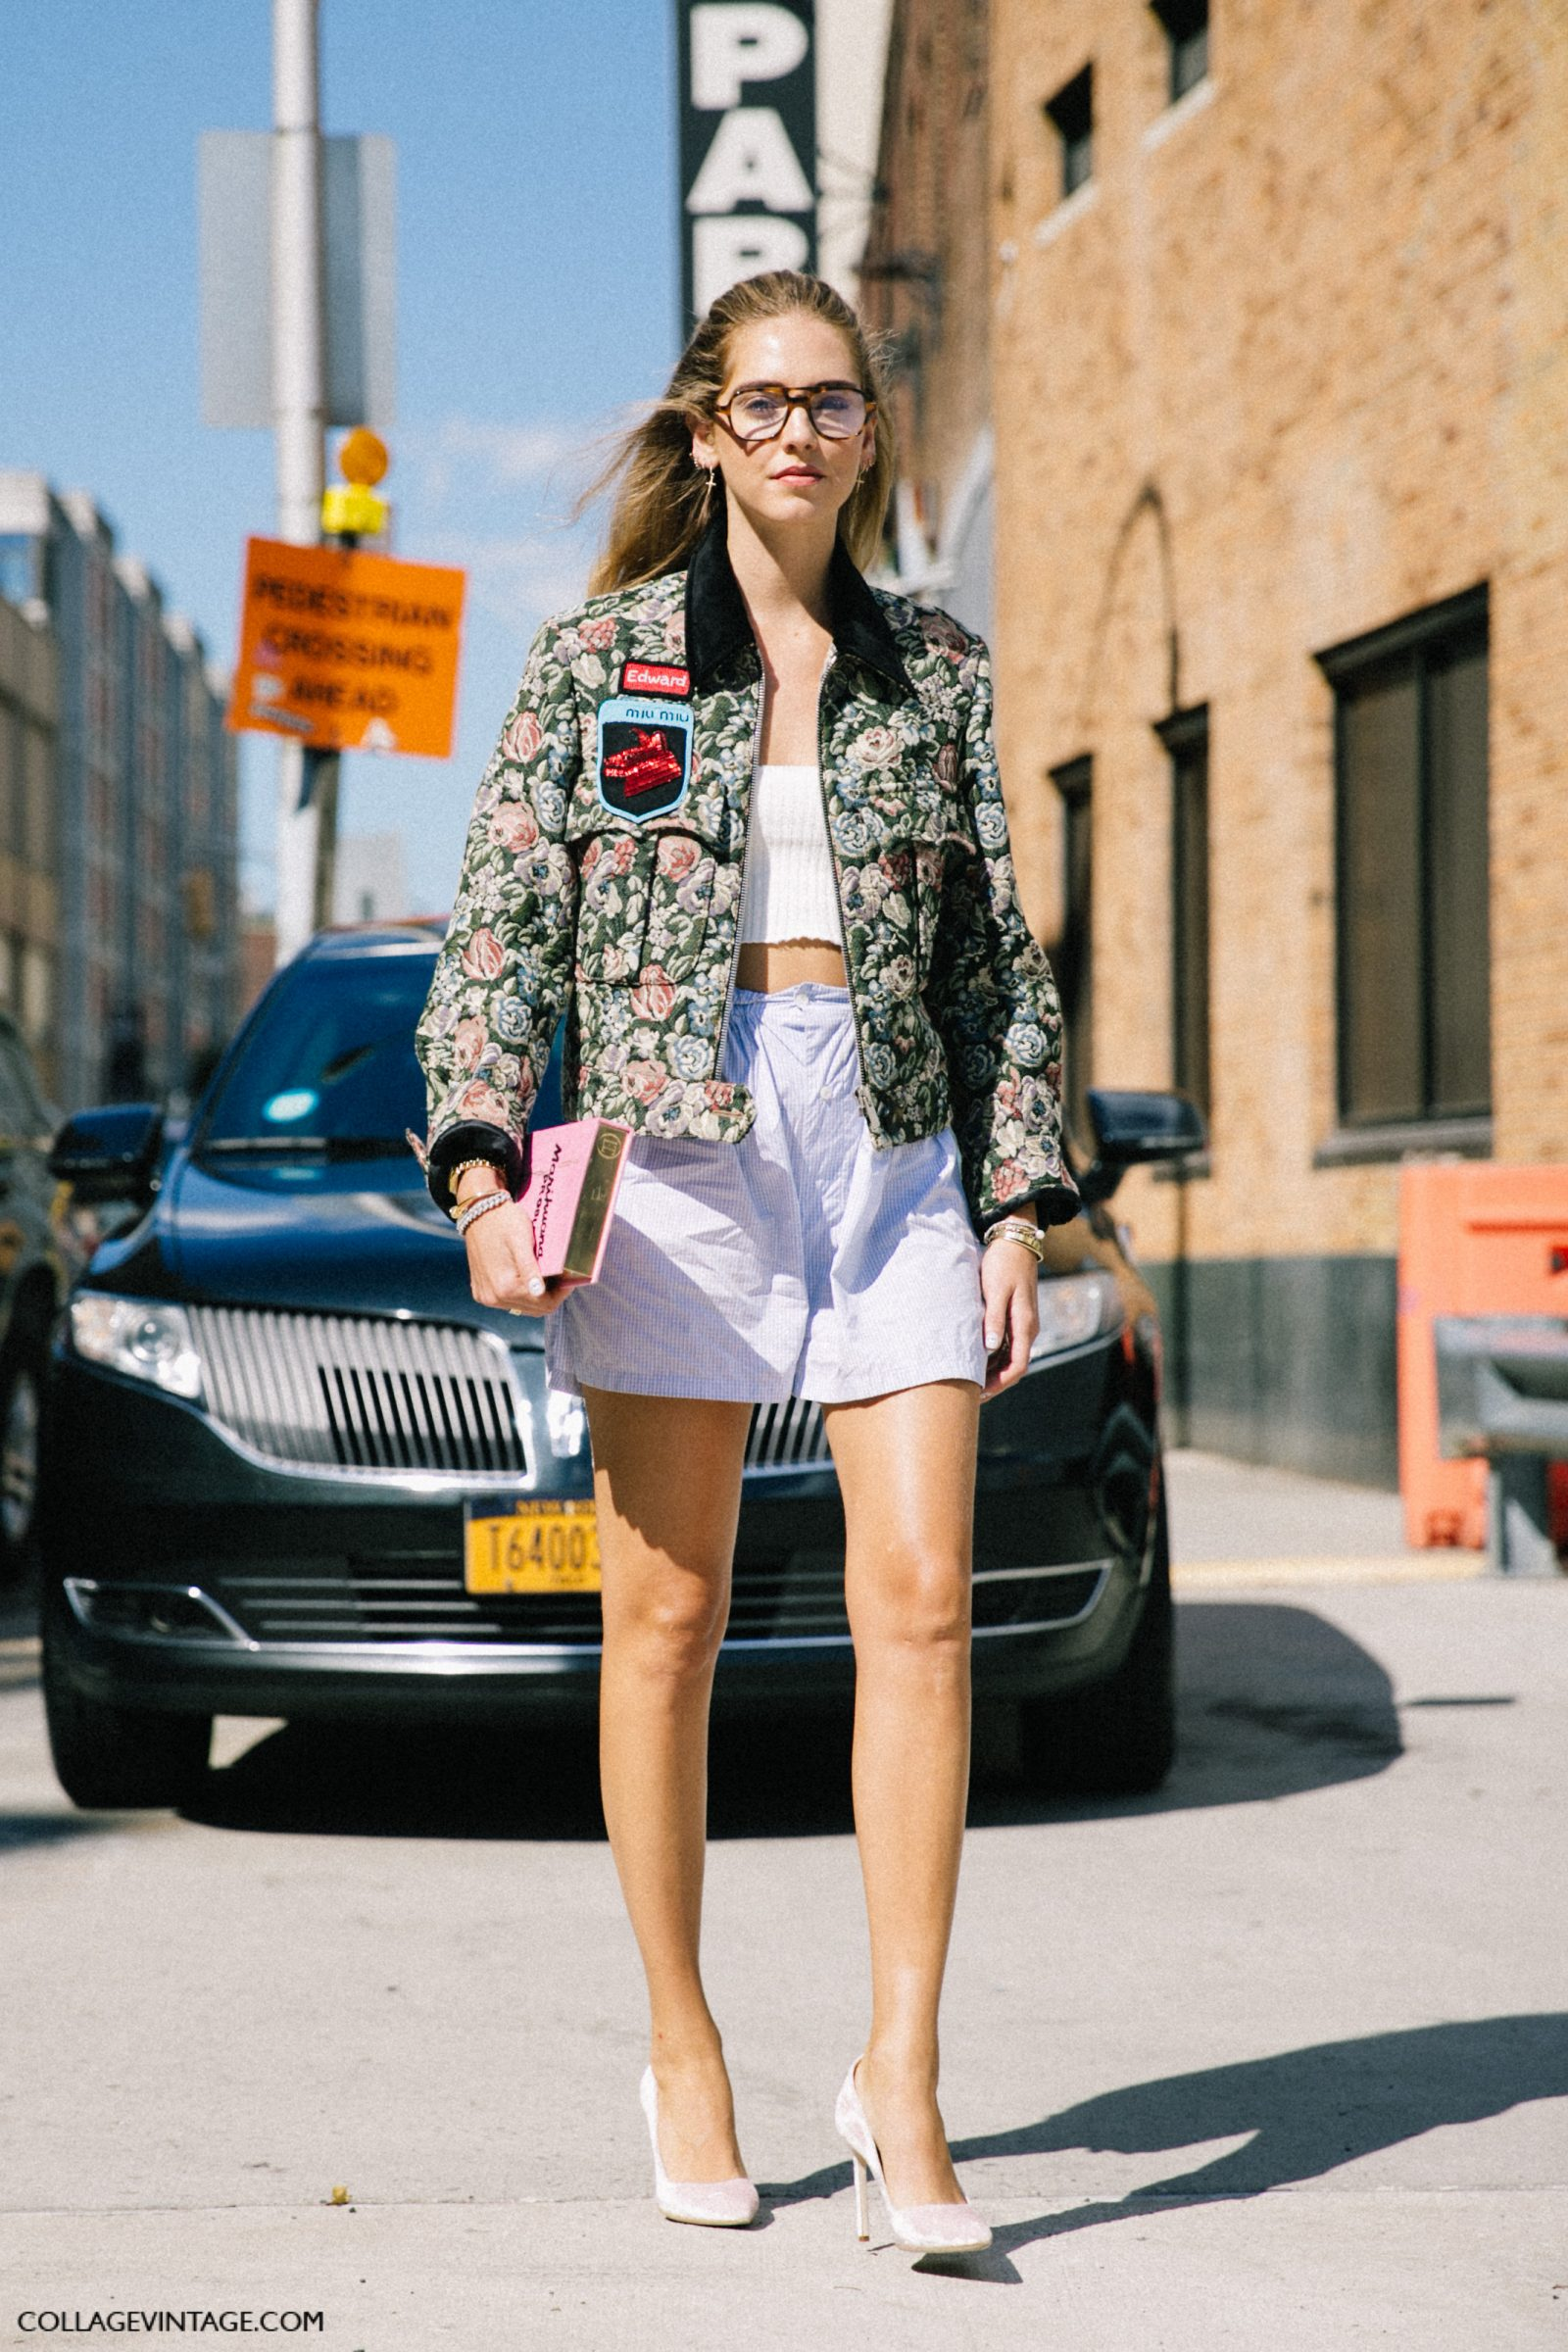 nyfw-new_york_fashion_week_ss17-street_style-outfits-collage_vintage-vintage-phillip_lim-the-row-proenza_schouler-rossie_aussolin-305